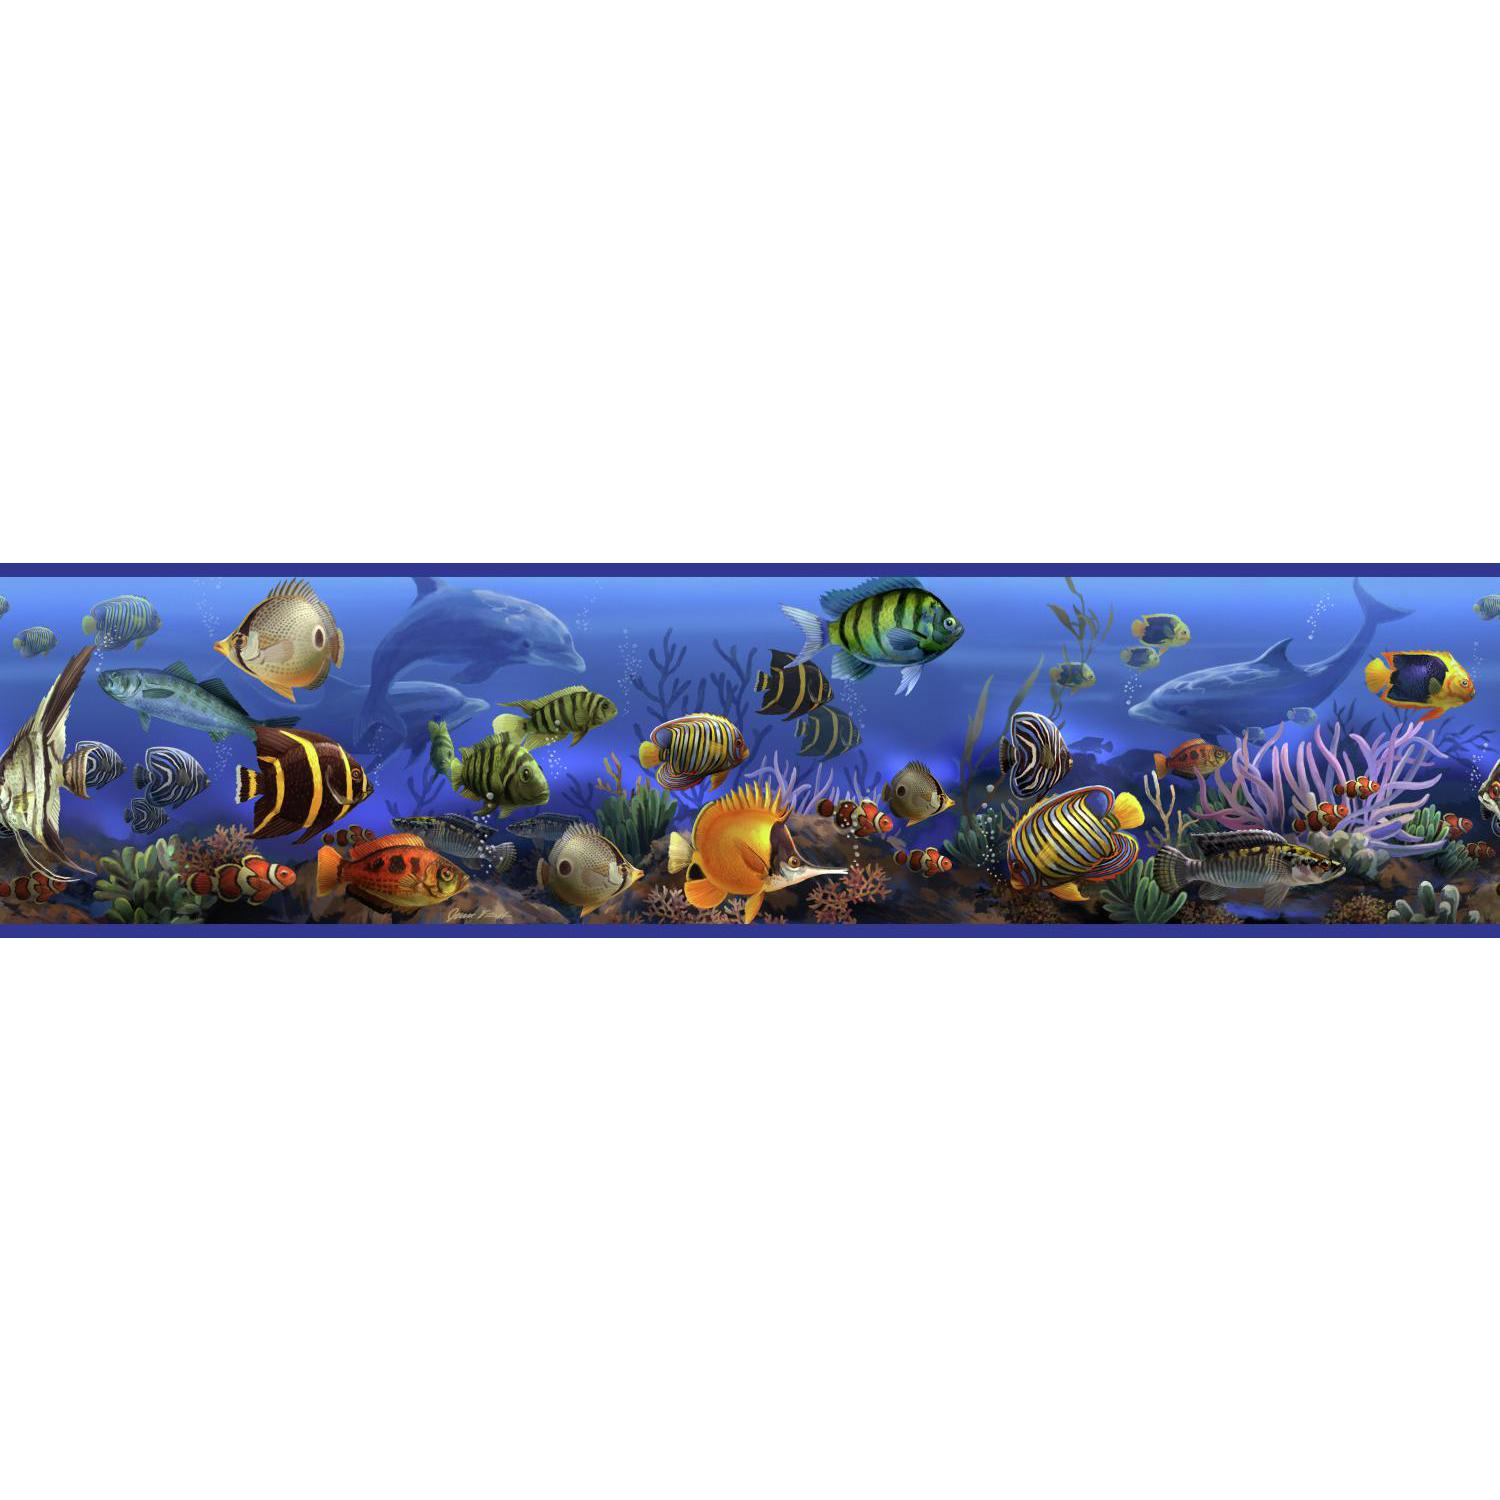 Under The Sea Wallpaper Border Room Wall Decor Ocean Fish Dolphin 1500x1500